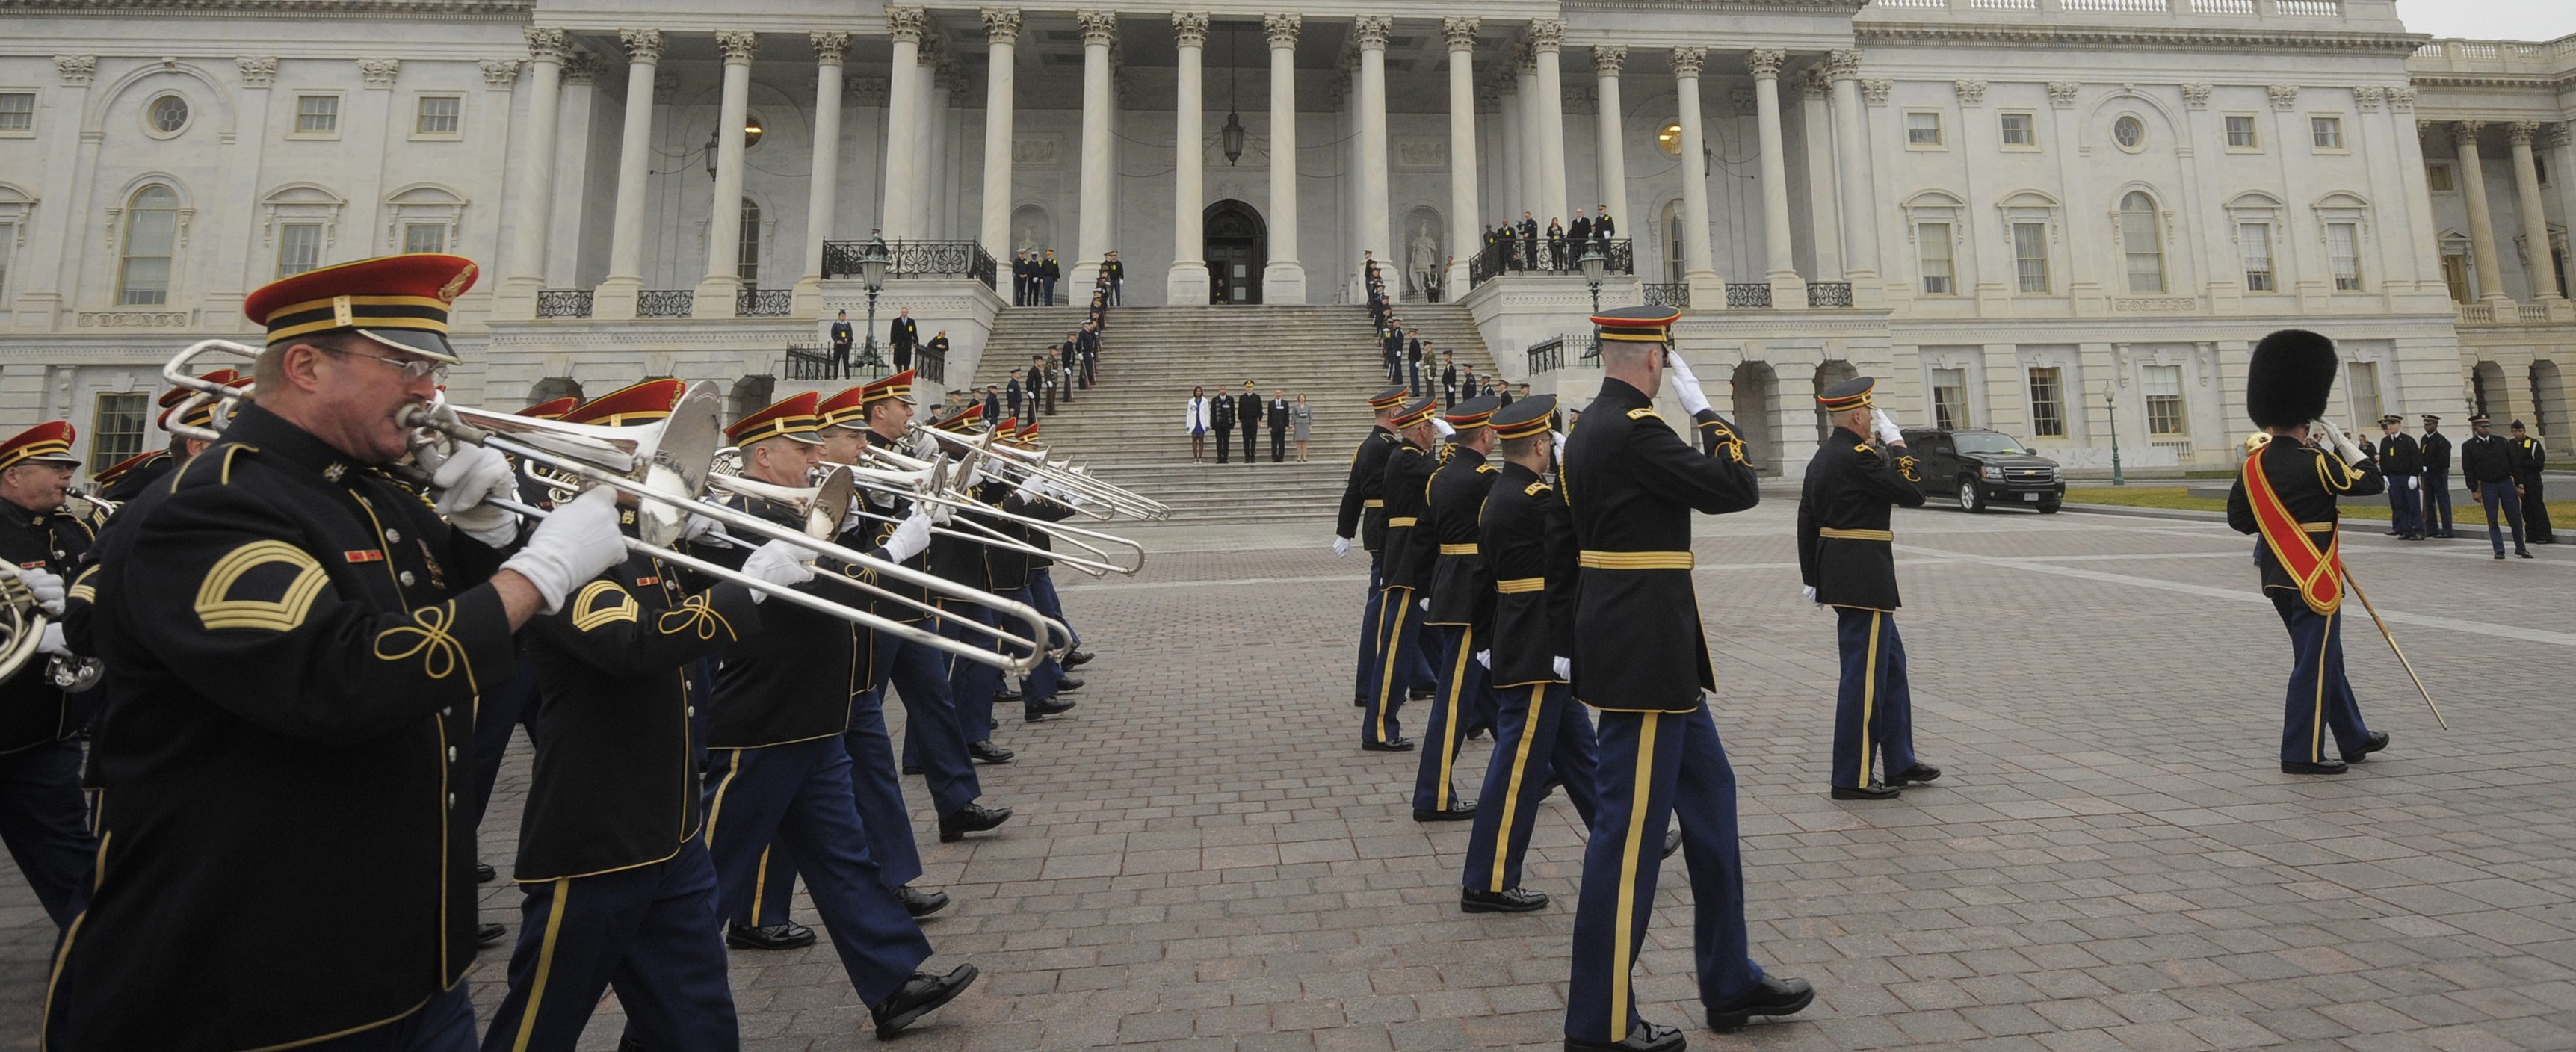 Members of the military band pass actors portraying (C, on steps) U.S. President Barack Obama, First Lady Michelle Obama, Vice President Joe Biden and his wife Jill Biden as they perform during a dress rehearsal at the U.S. Capitol in Washington January 13, 2013. The official inauguration and swearing-in will take place on January 21, 2013. REUTERS/Mike Theiler (UNITED STATES - Tags: POLITICS) - RTR3CE4R